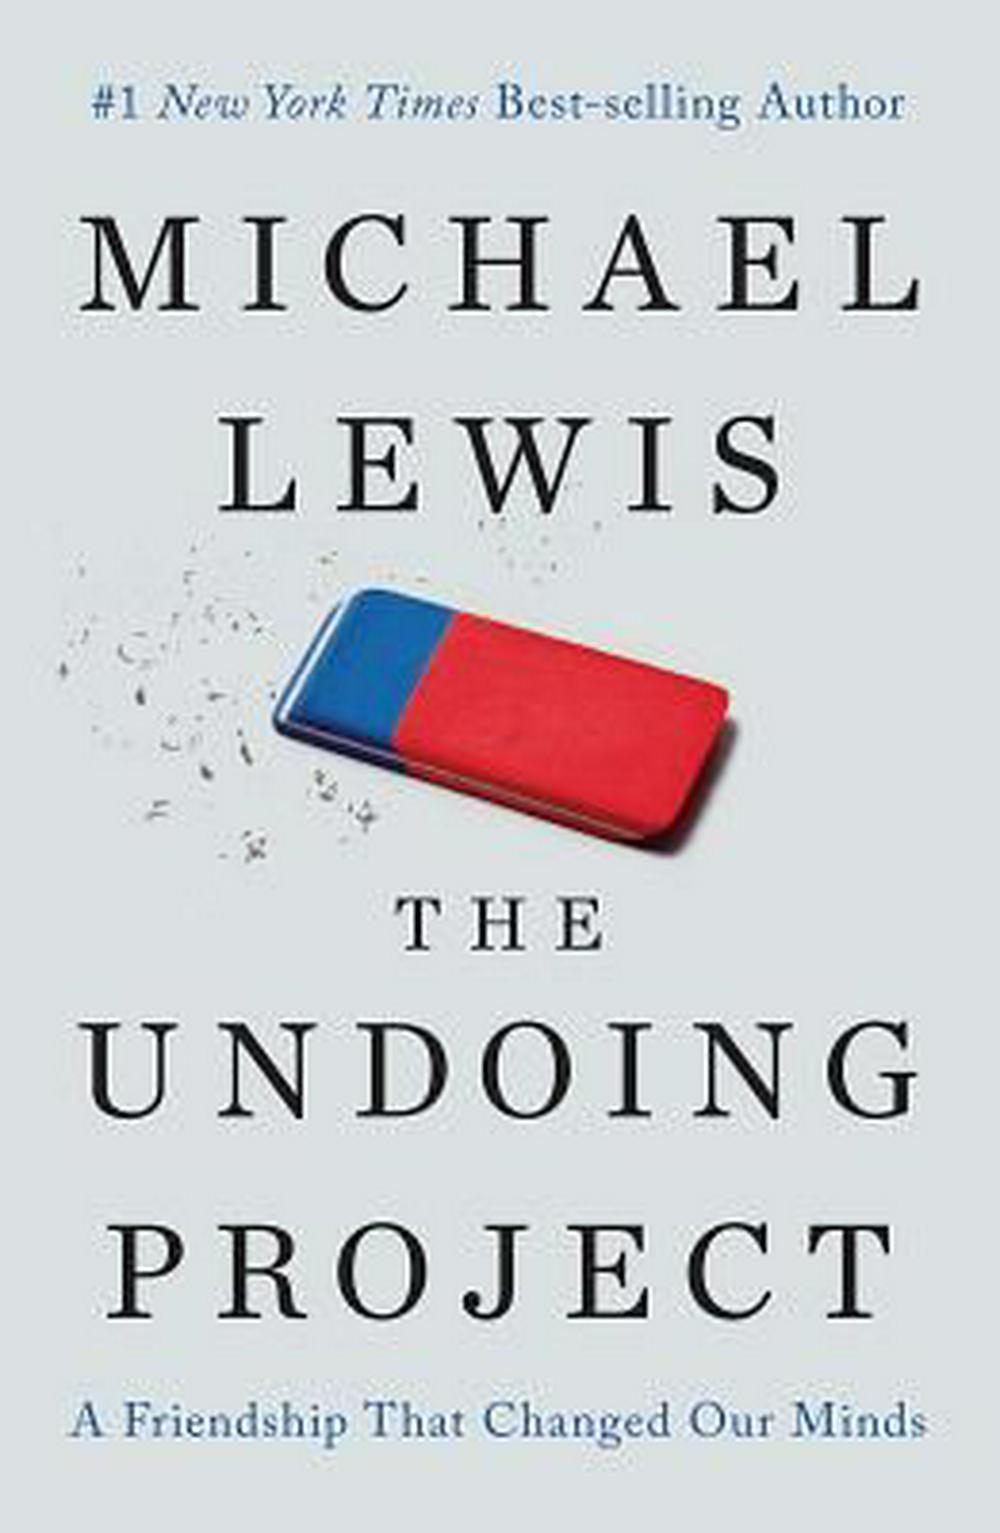 The Undoing Project: A Friendship That Changed Our Minds by Michael Lewis, ISBN: 9780393254594